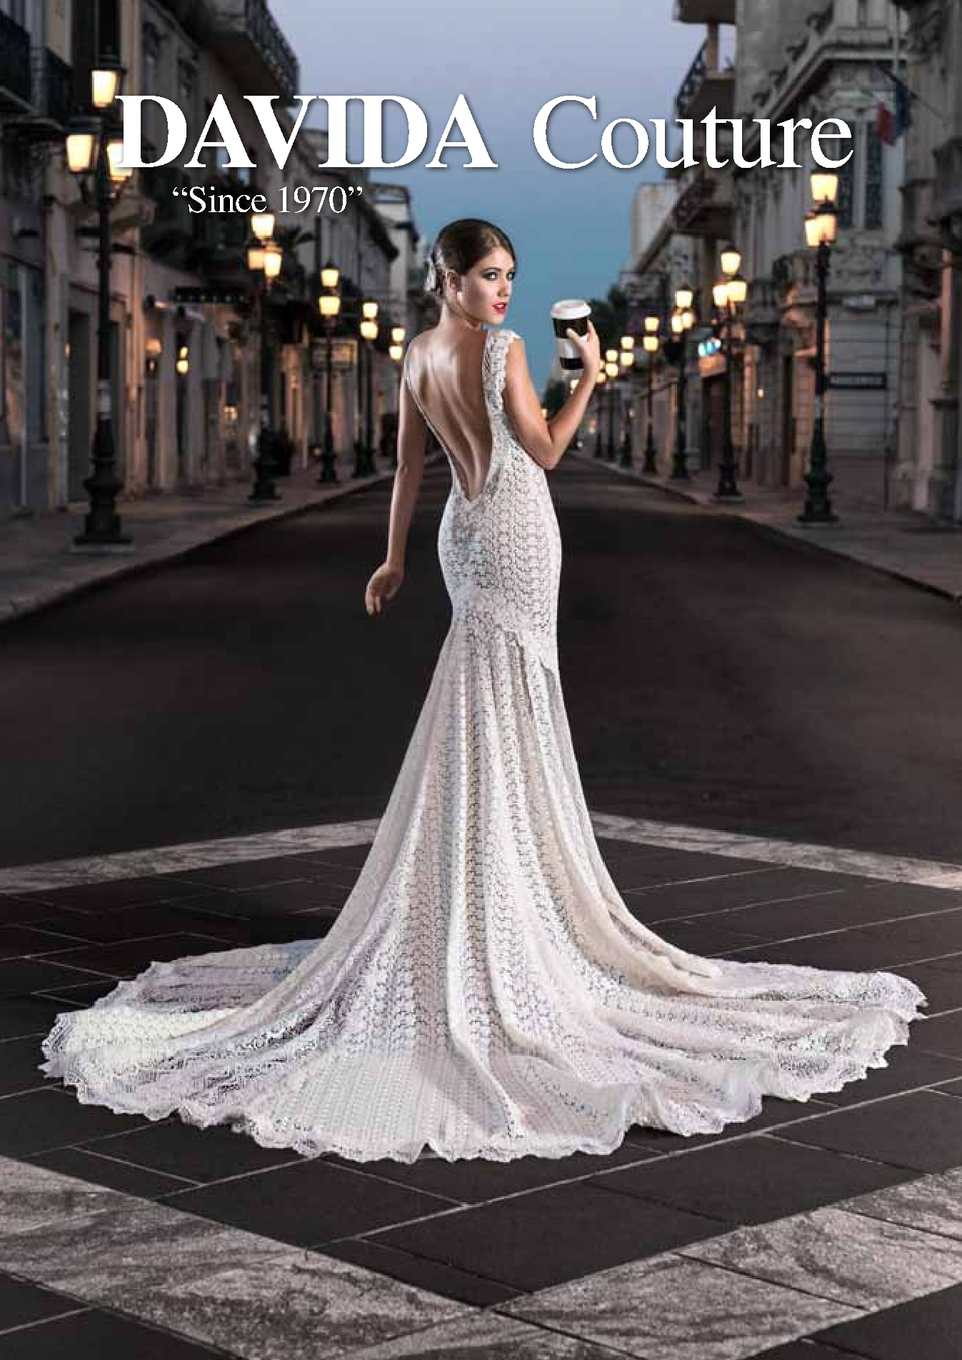 3f318d8940fe Cool italia dress  Outlet abiti da sposa reggio calabria